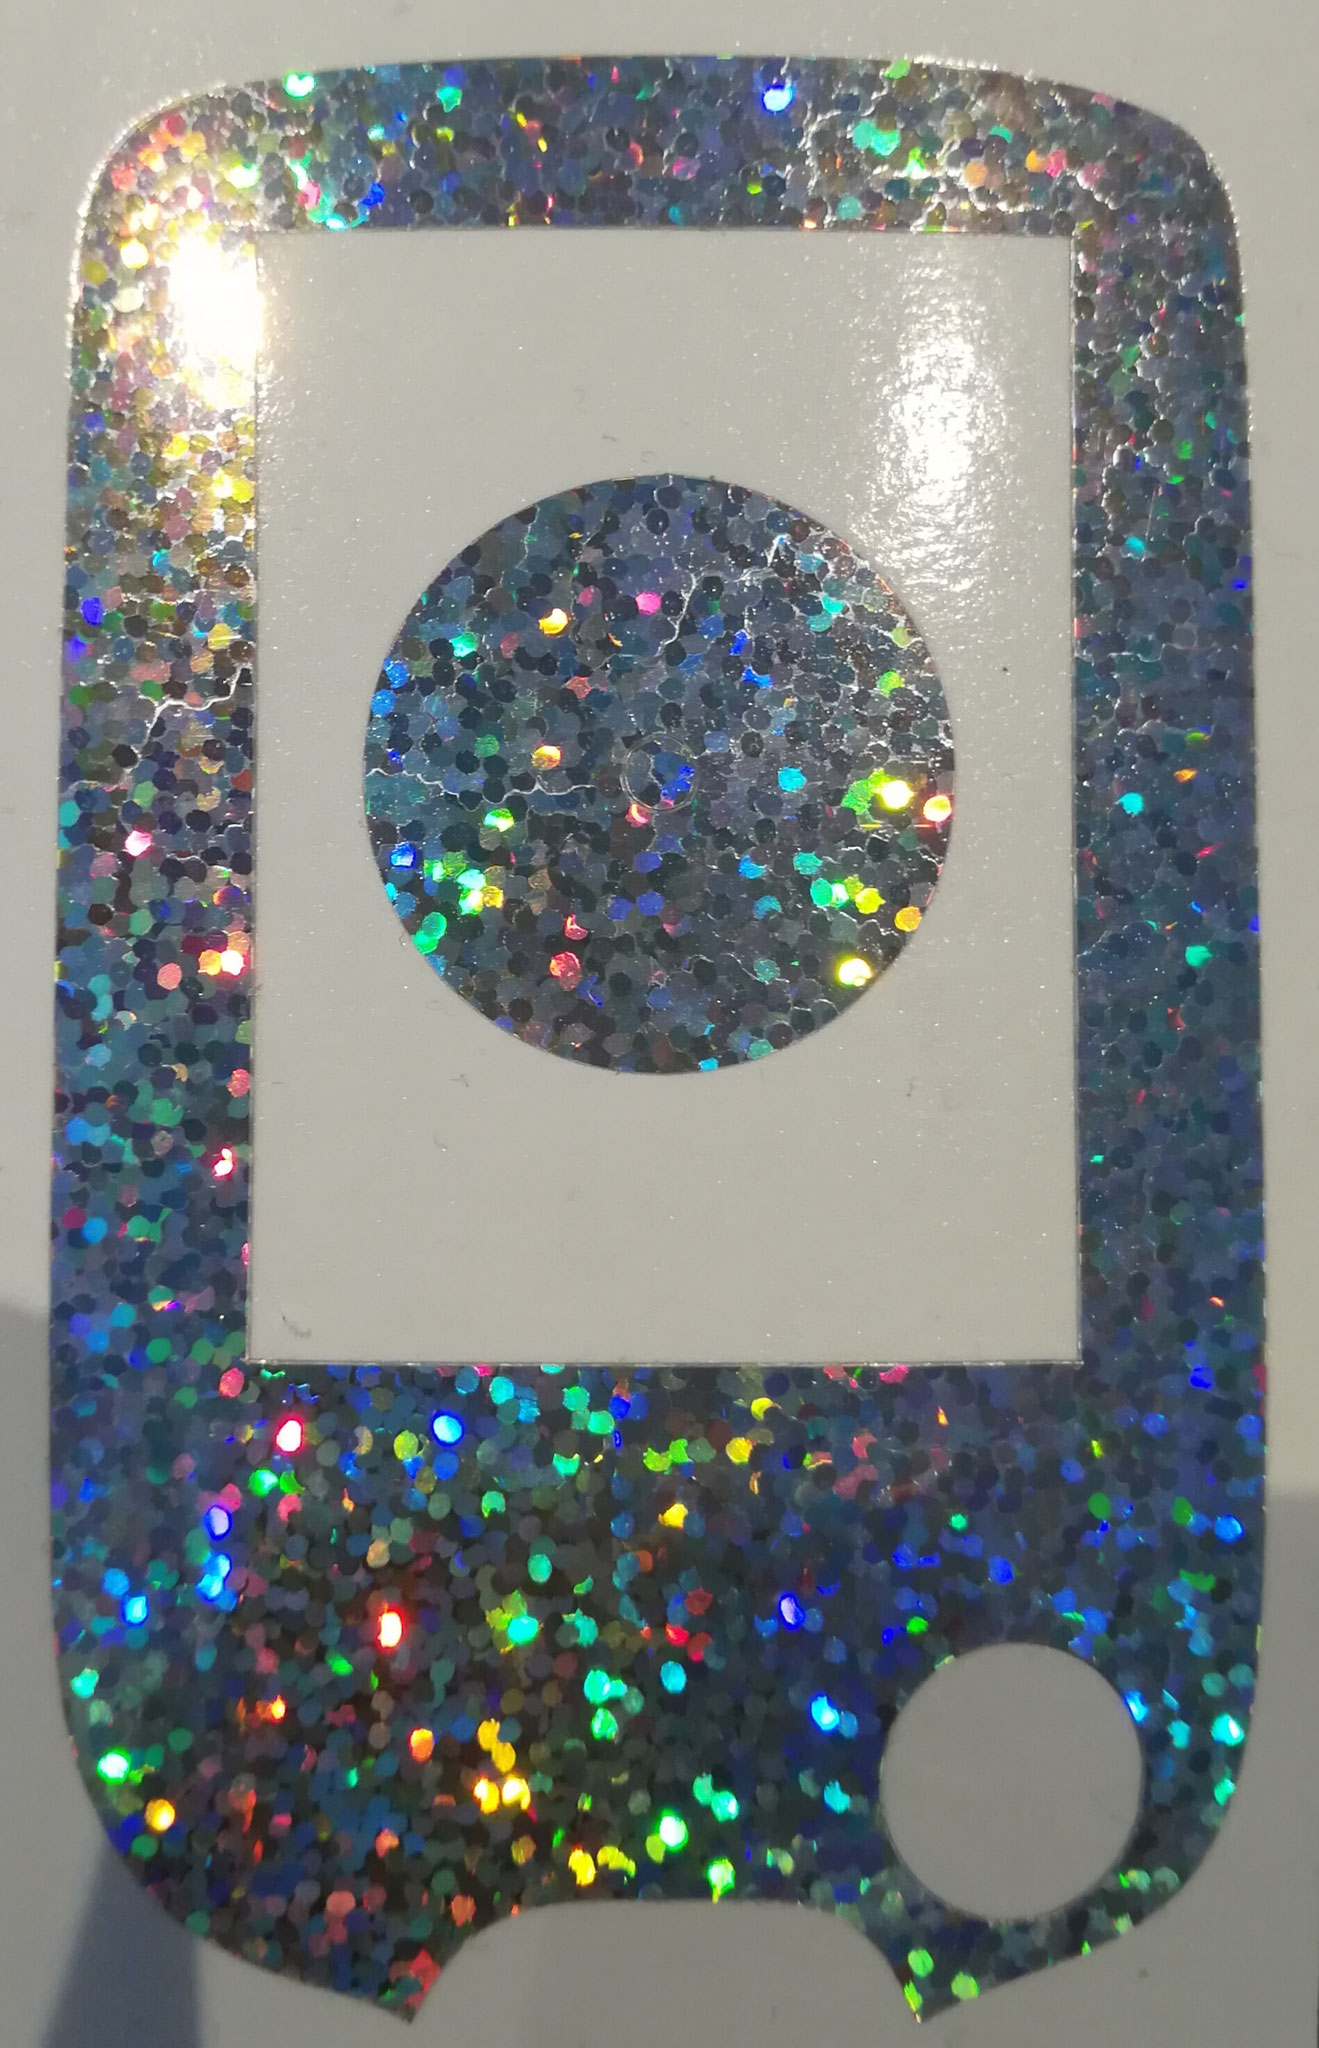 NEW: mega glitter sticker for Freestyle Libre reader and sensor silver